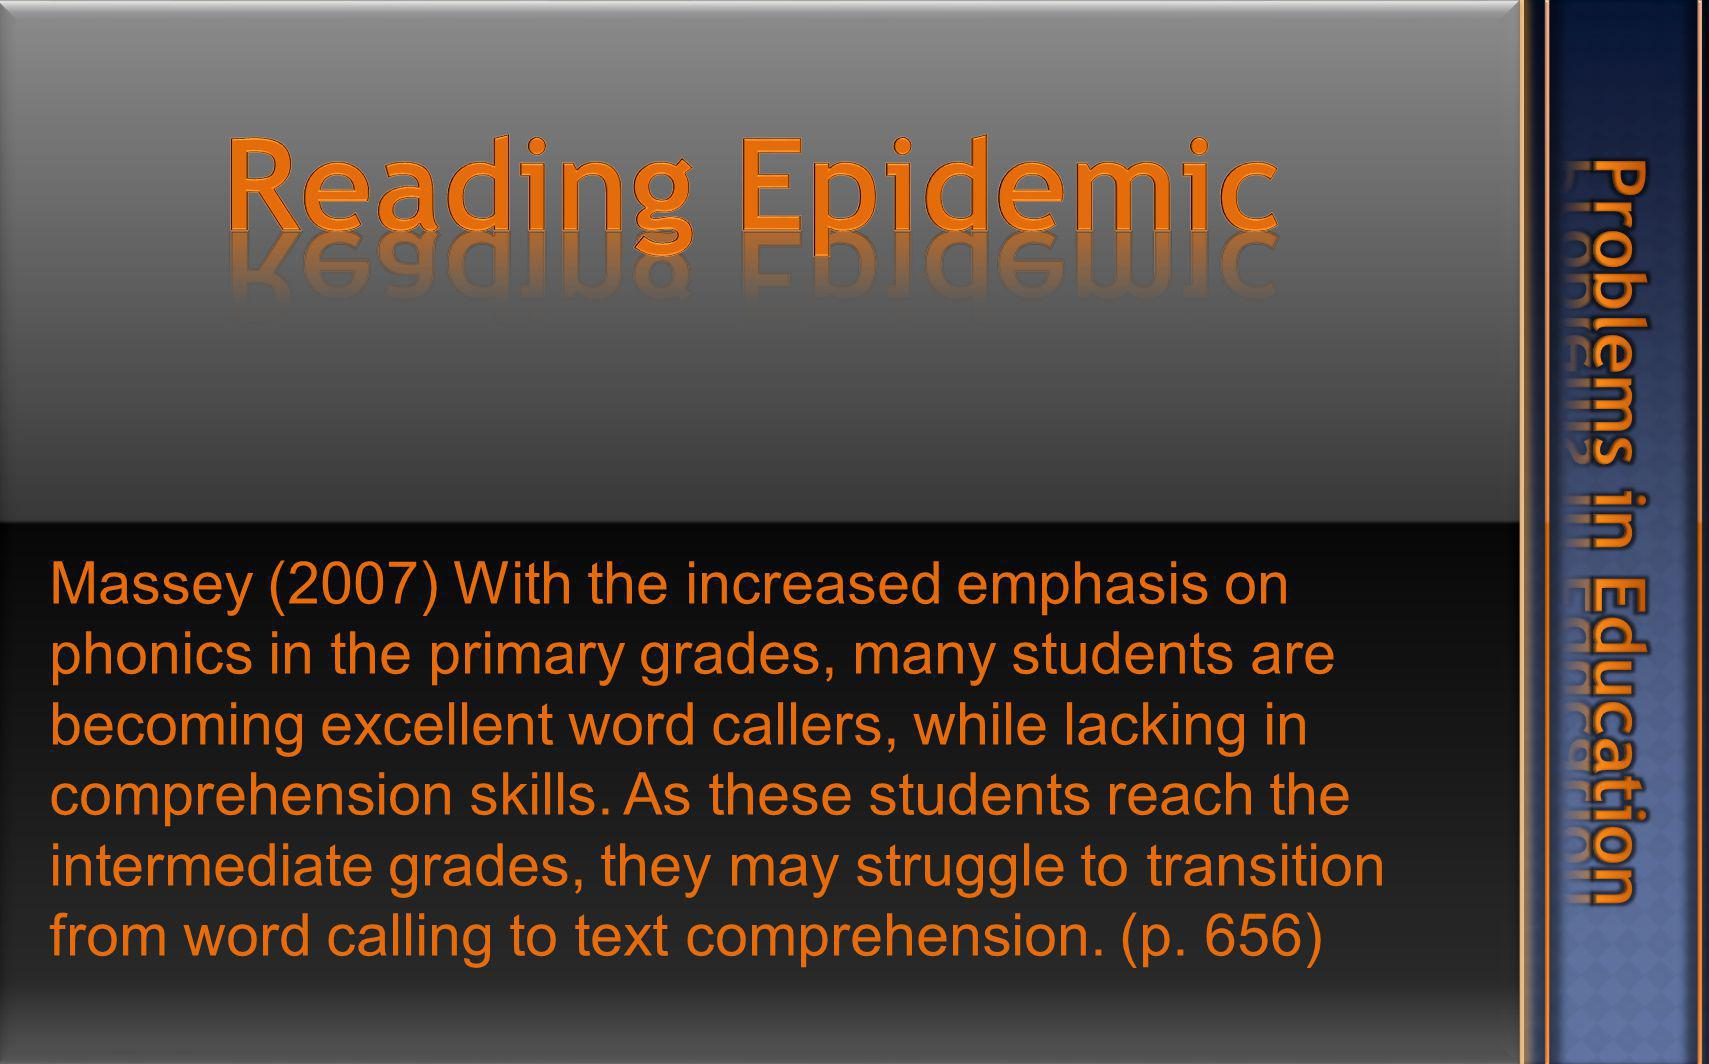 Massey (2007) With the increased emphasis on phonics in the primary grades, many students are becoming excellent word callers, while lacking in comprehension skills.